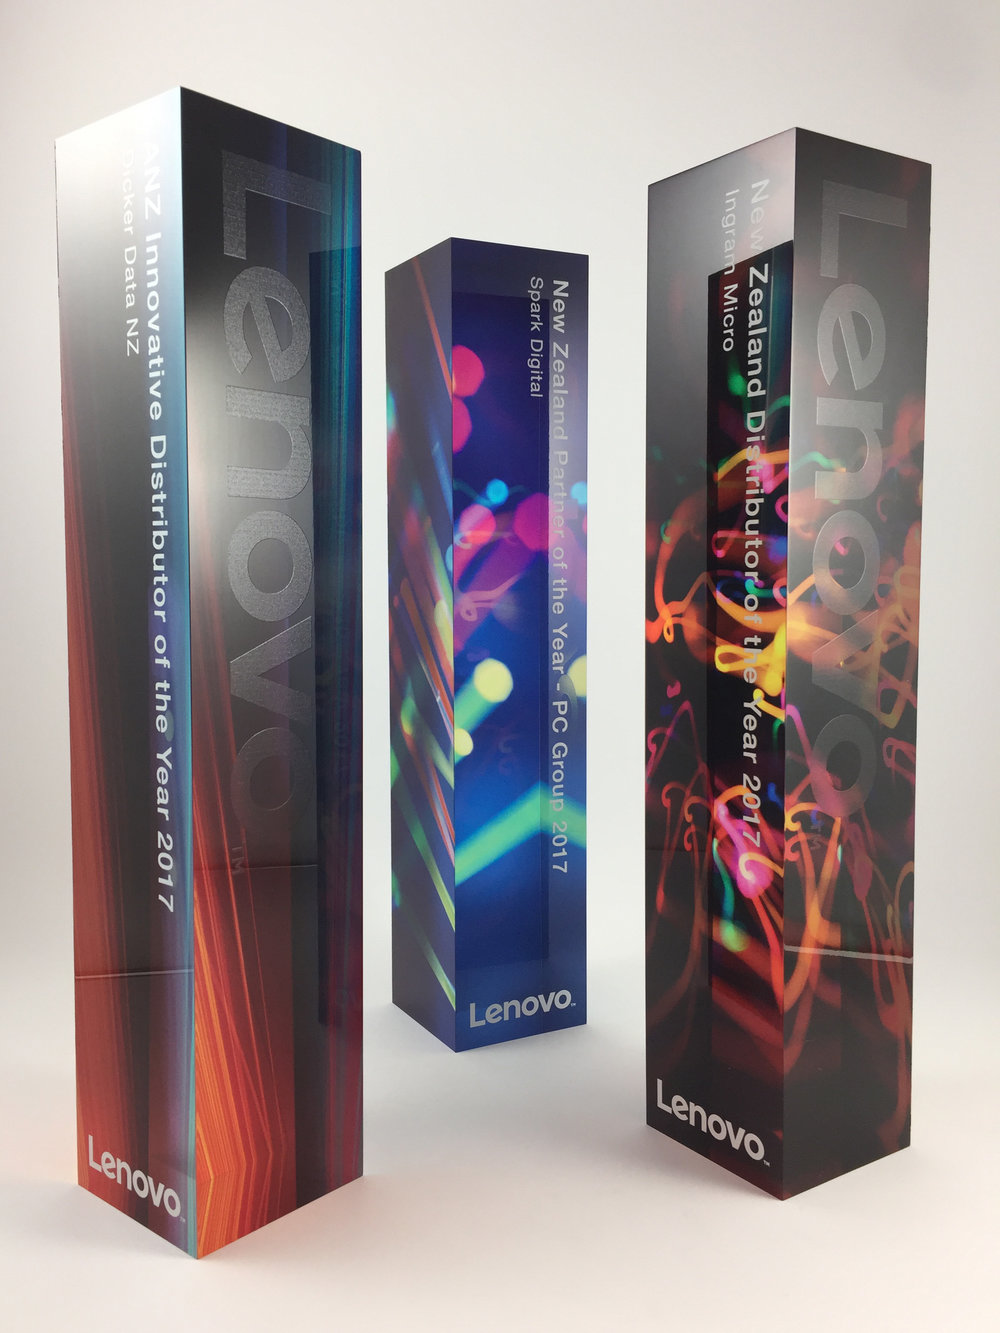 Lenovo-acrylic-trophy-awards-03.jpg